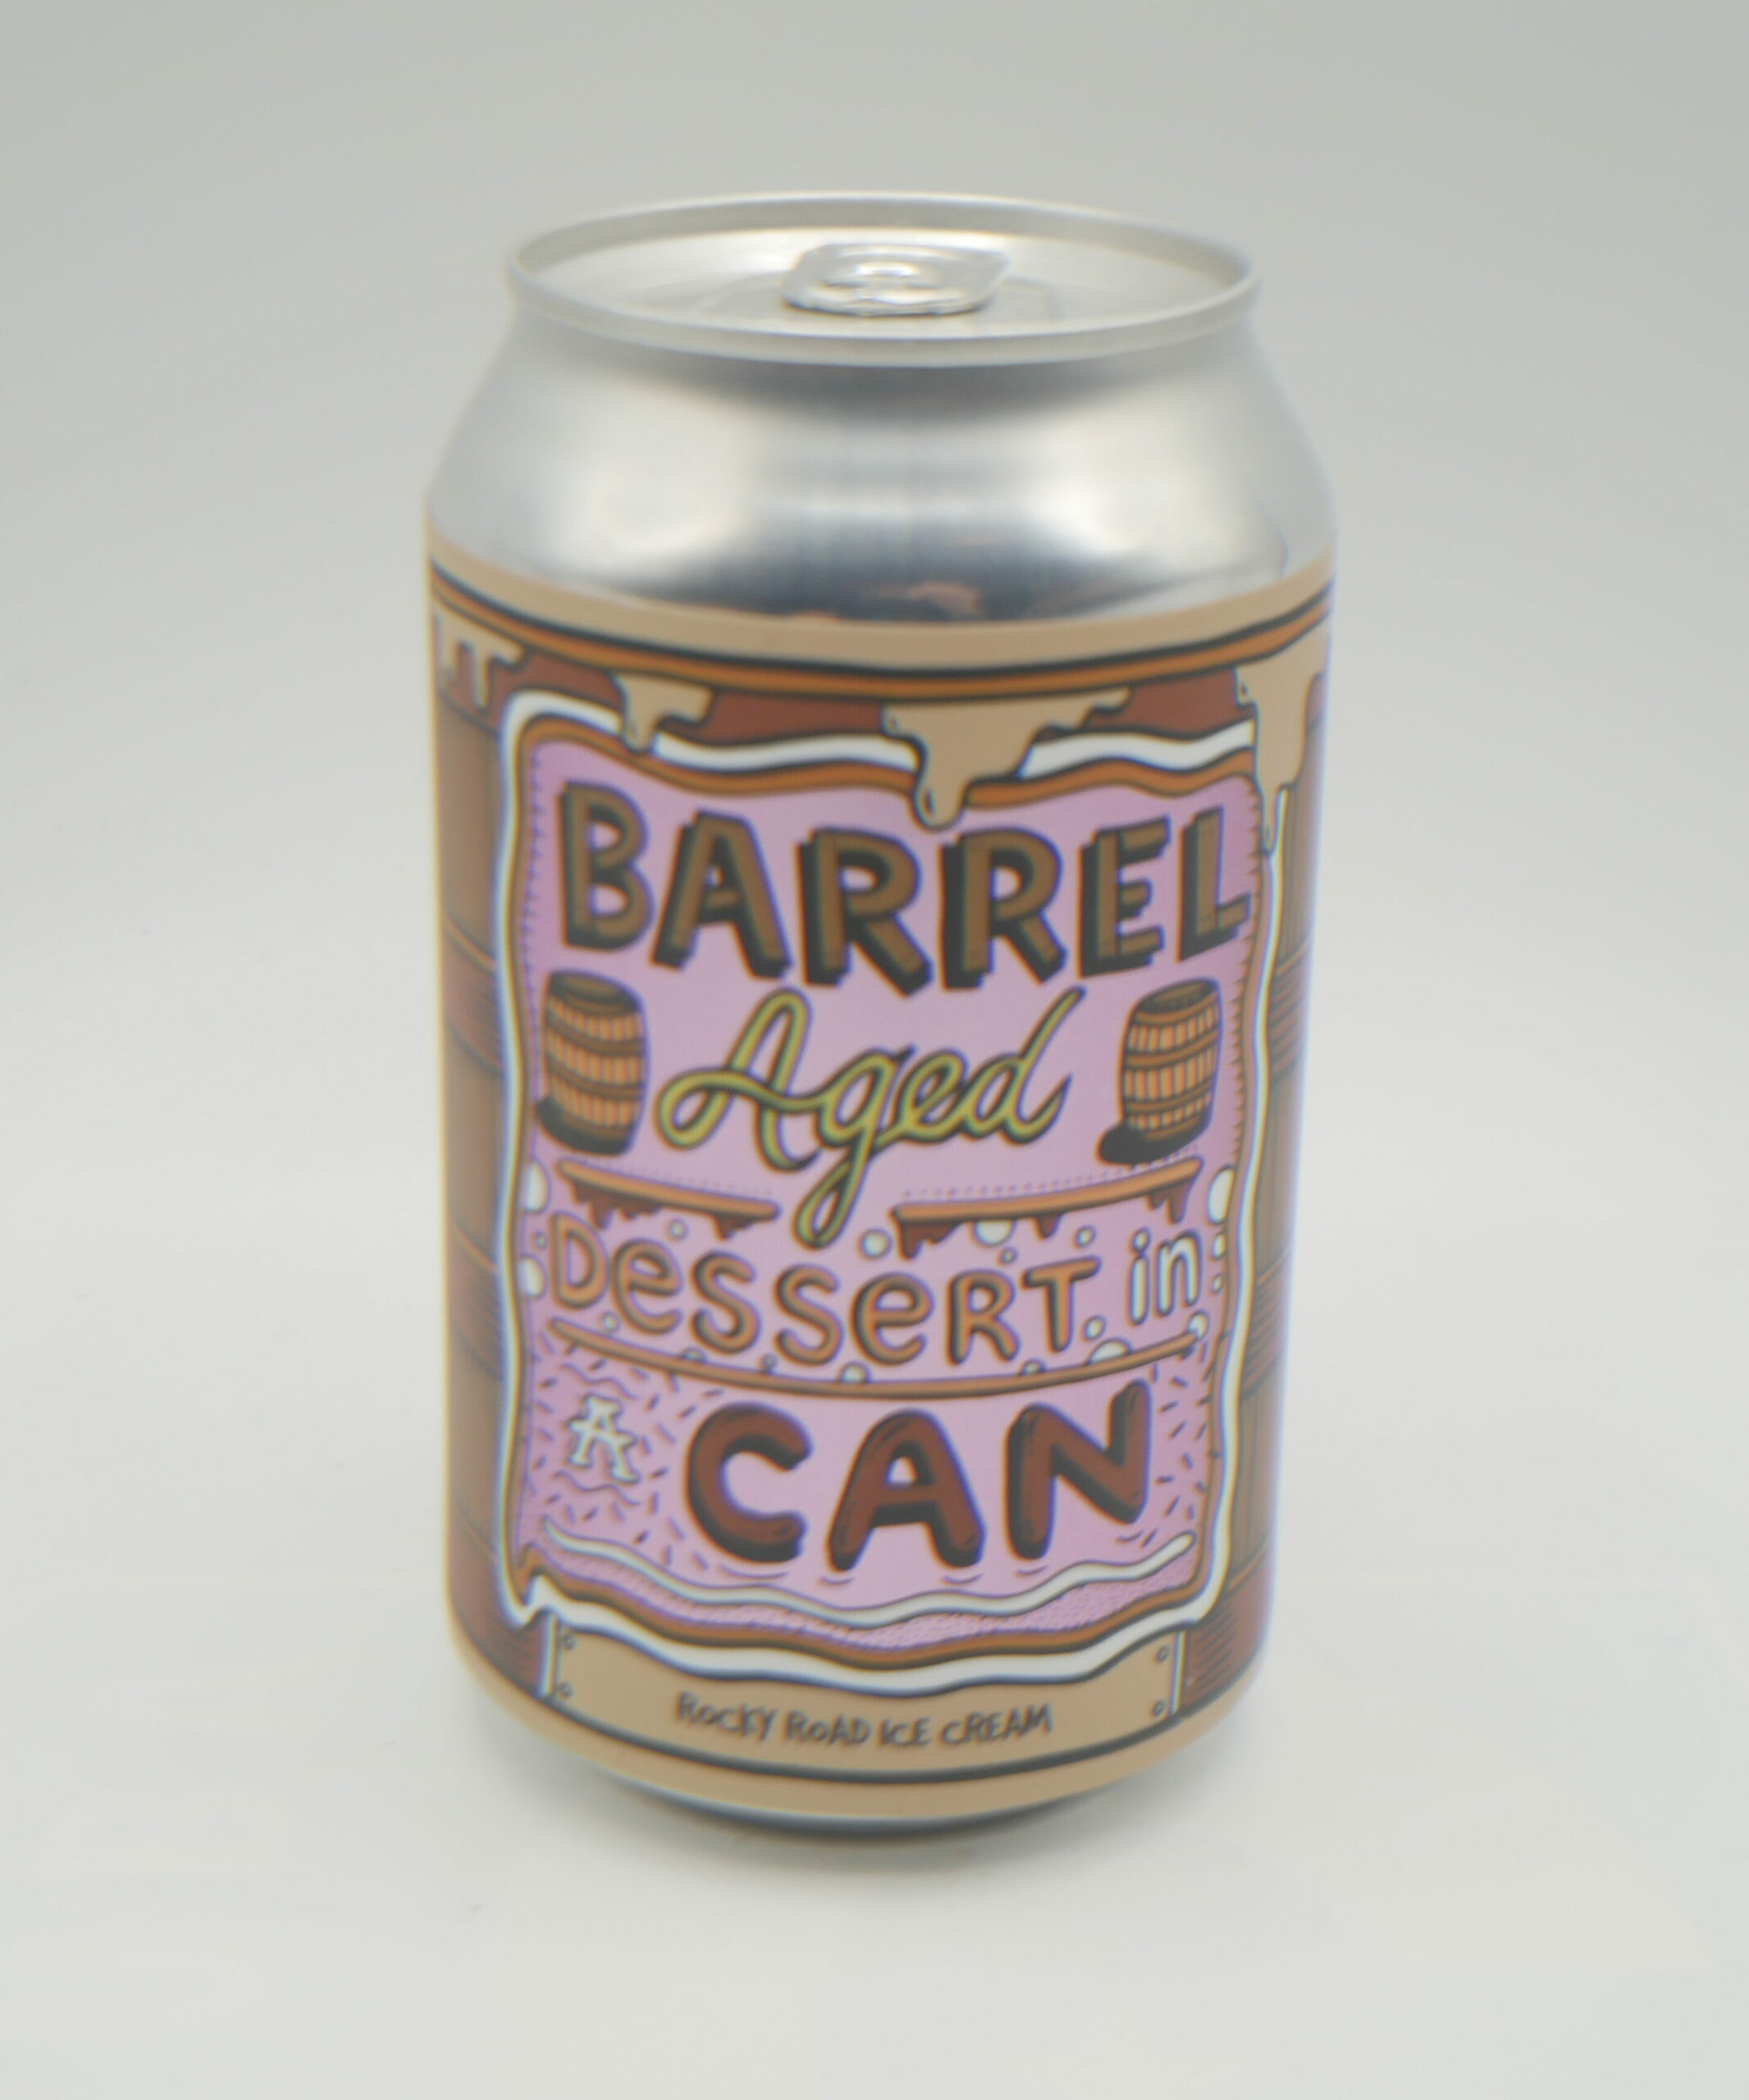 Img Barrel aged dessert in can rocky road ice cream